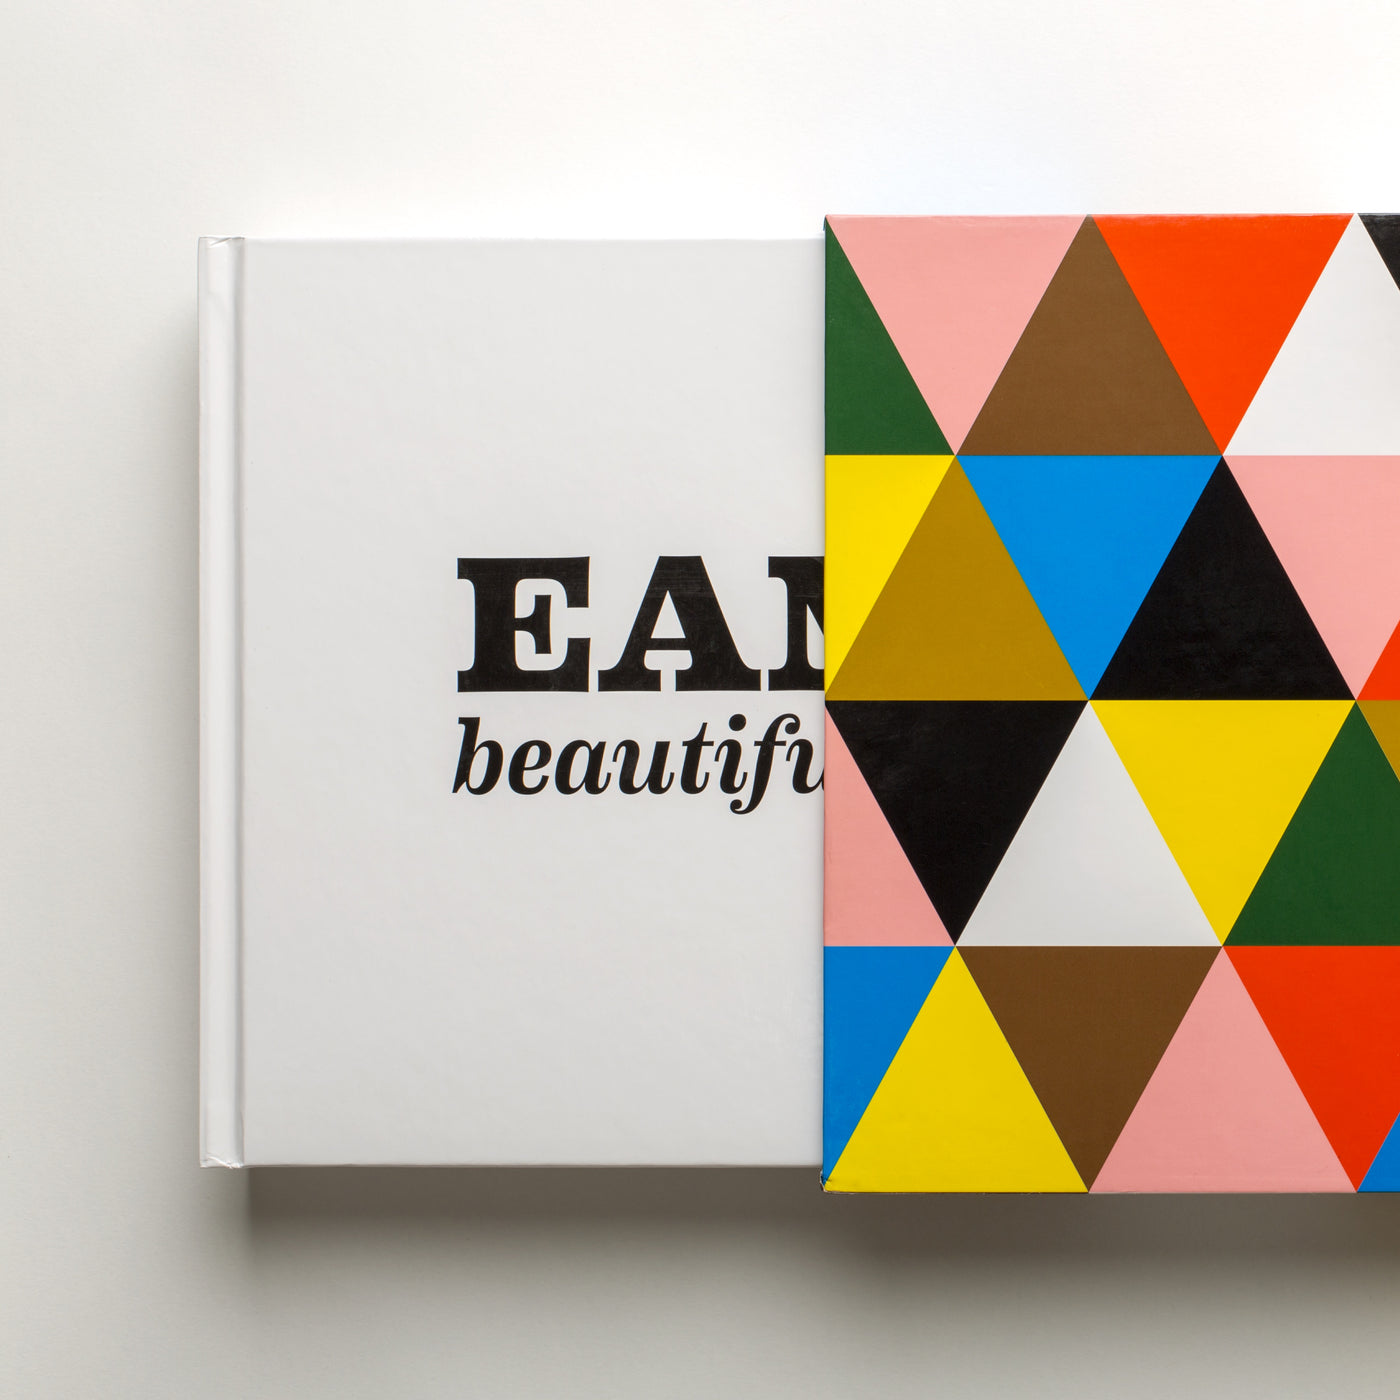 Eames Book - Beautiful Details - By Autotype